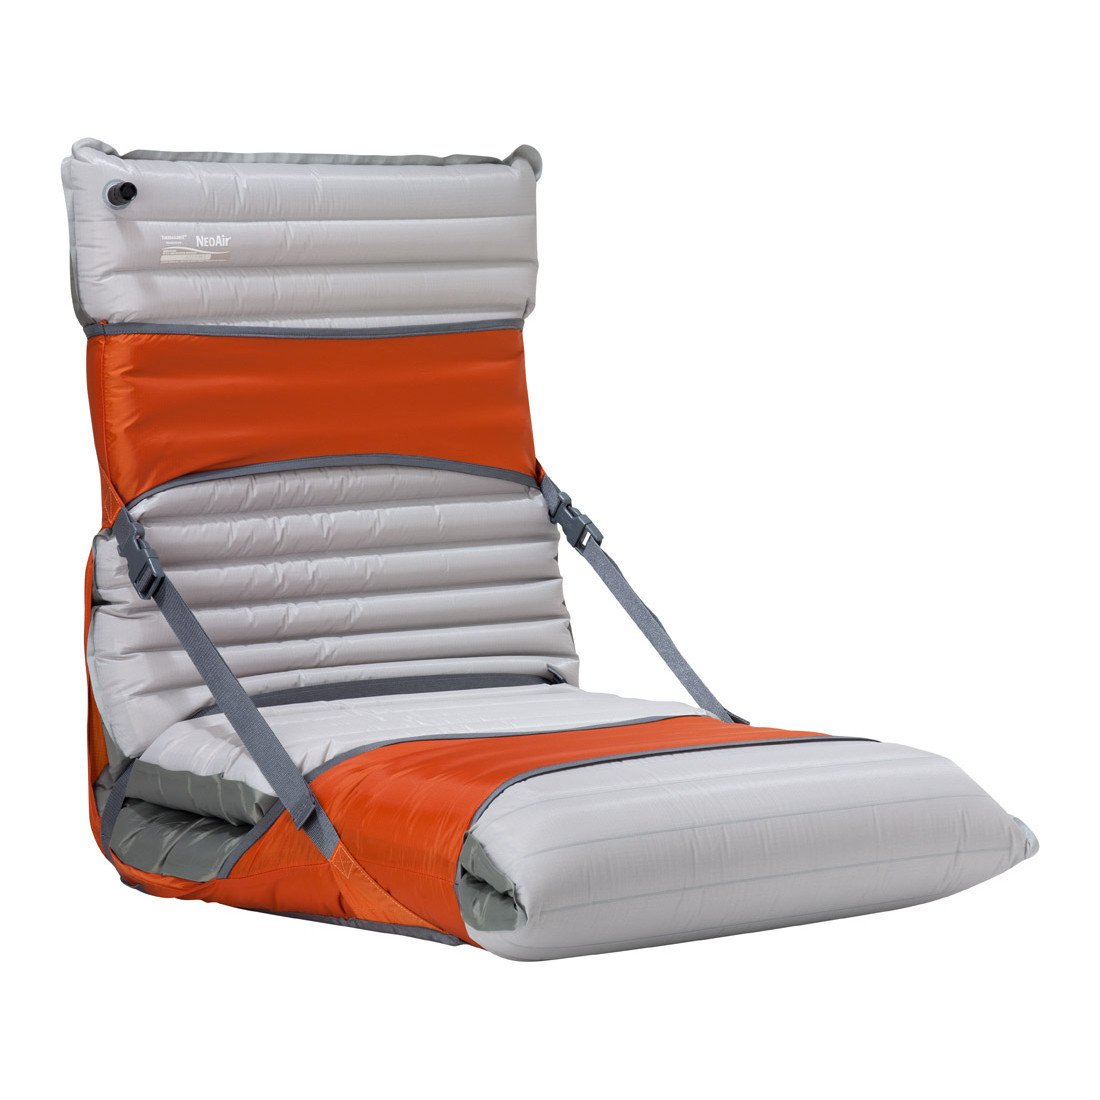 Thermarest Trekker Chair Kit 25, shown in use with a grey sleeping mat, kit in orange colour